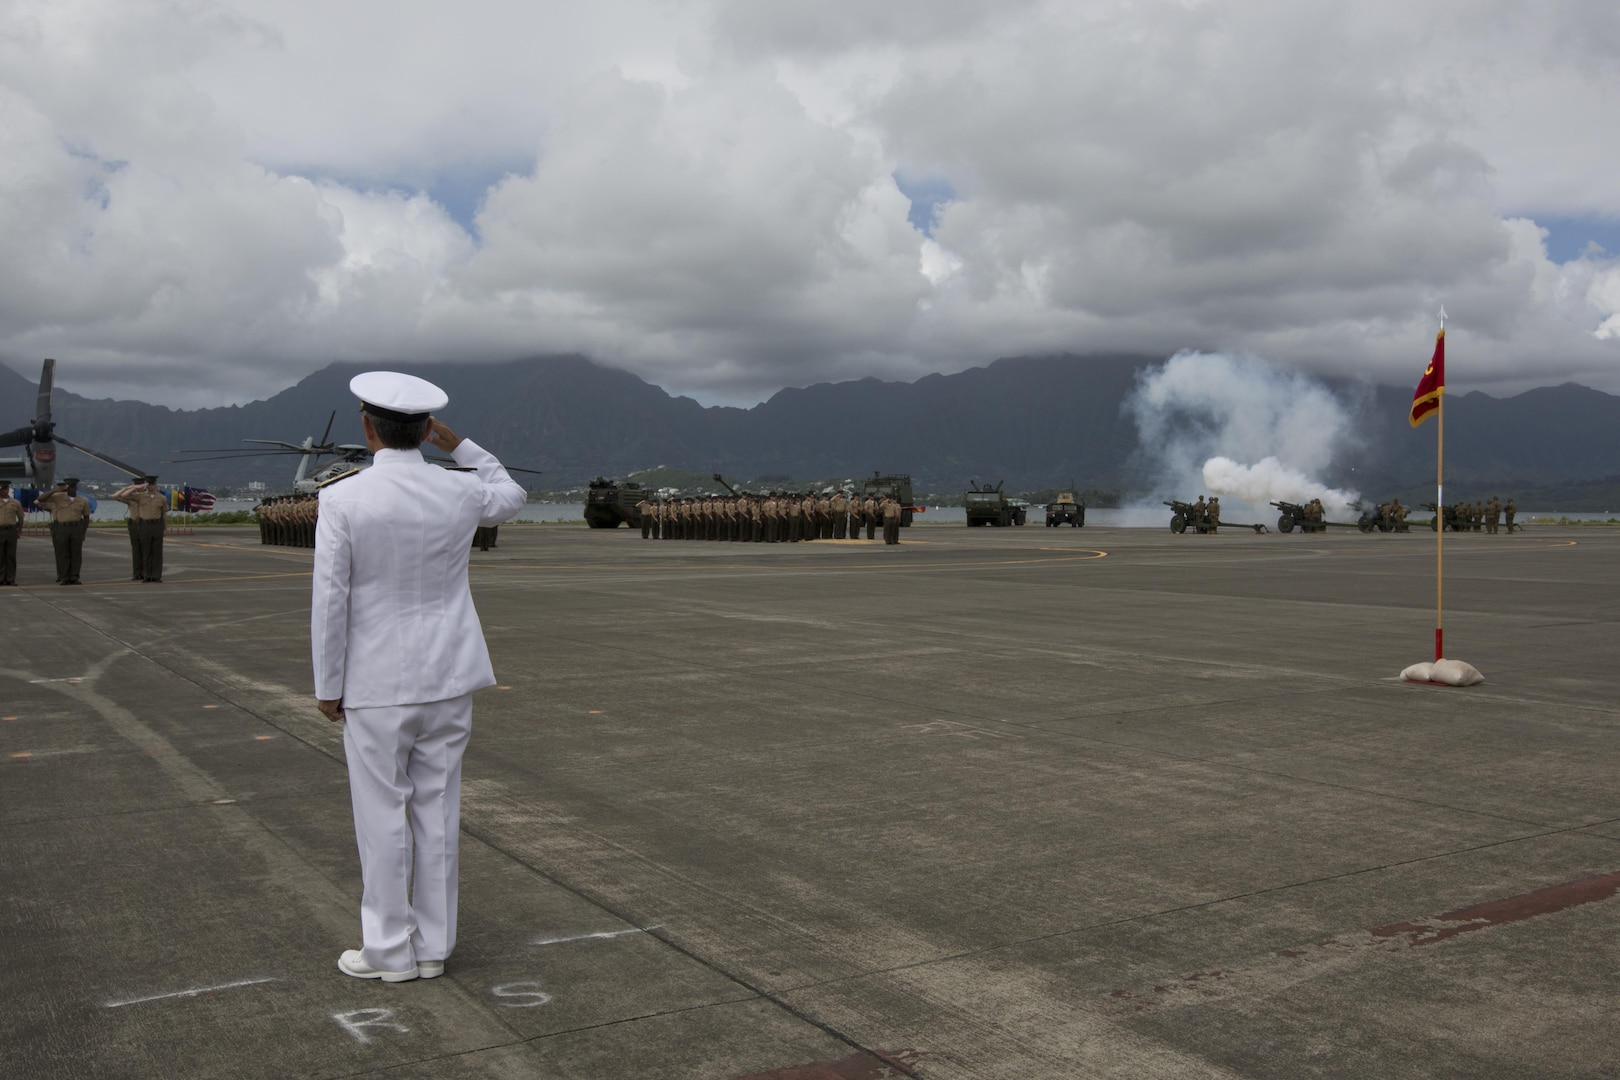 Adm. Harry B. Harris, commander, U.S. Pacific Command, is rendered honors by members of U.S. Marine Corps Forces, Pacific during a change of command ceremony at Marine Corps Base Hawaii, Aug. 26, 2016. Harris presided over the change of command from Lt. Gen. John A. Toolan to Lt. Gen. David H. Berger. (U.S. Marine Corps photo by Lance Cpl. Matthew Casbarro/Released)